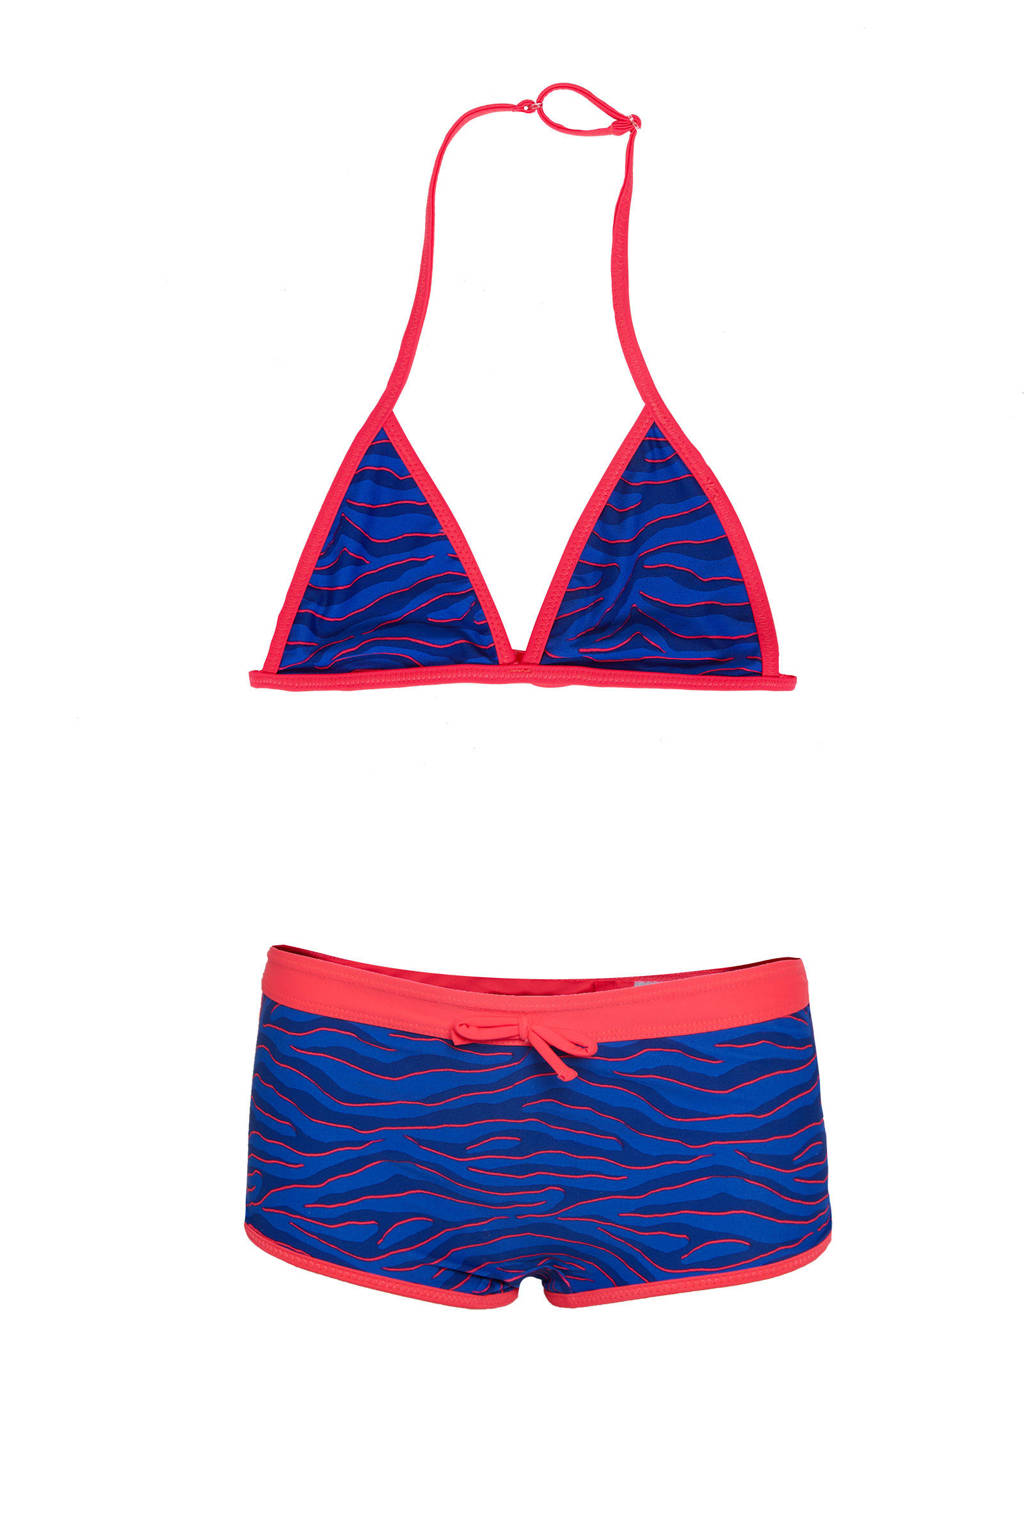 WE Fashion triangel bikini met all over print, Roze / Blauw